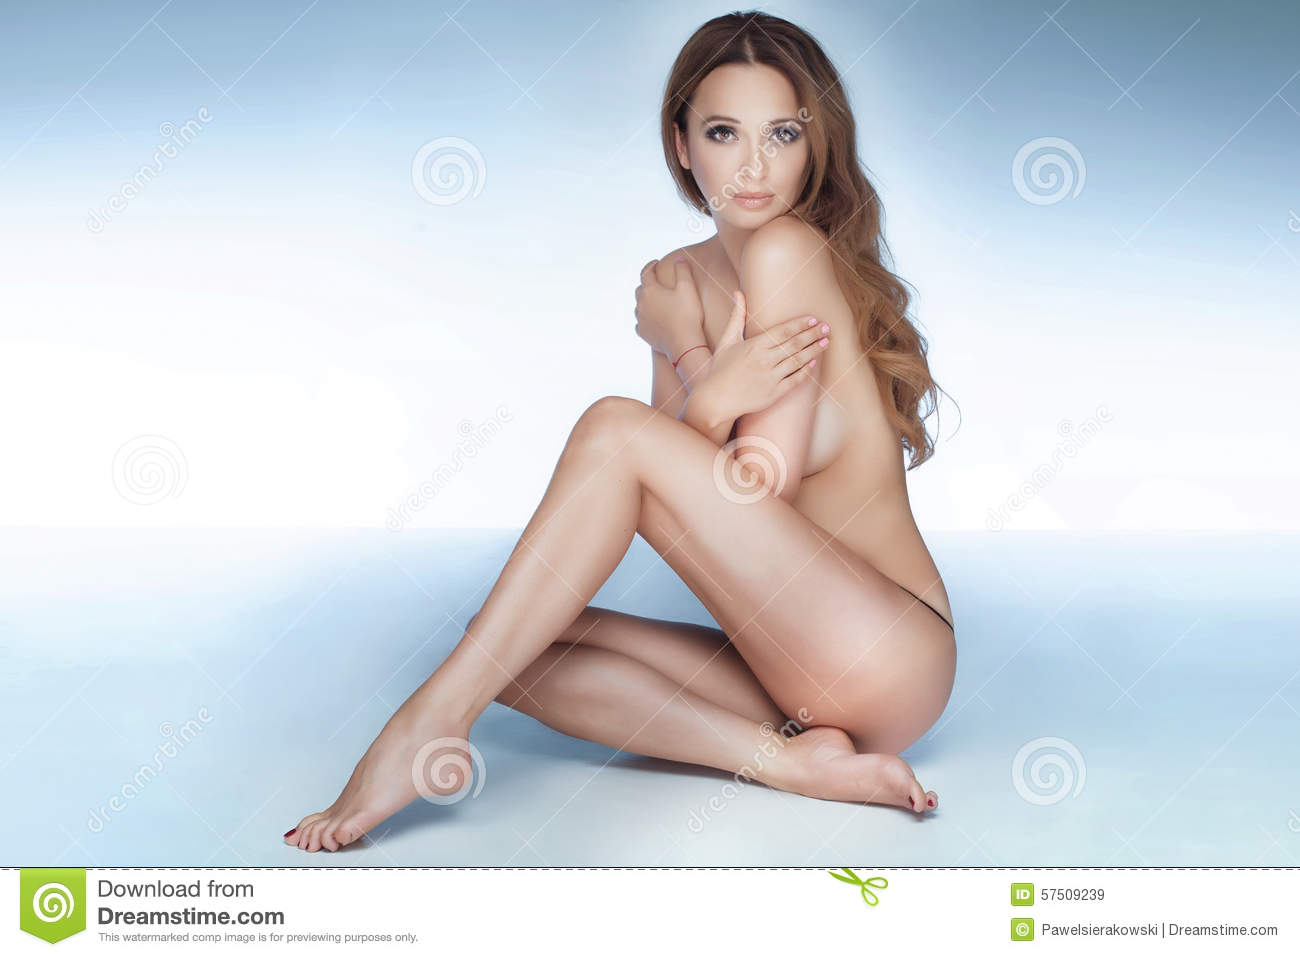 Most Beautiful Naked Woman Images 39